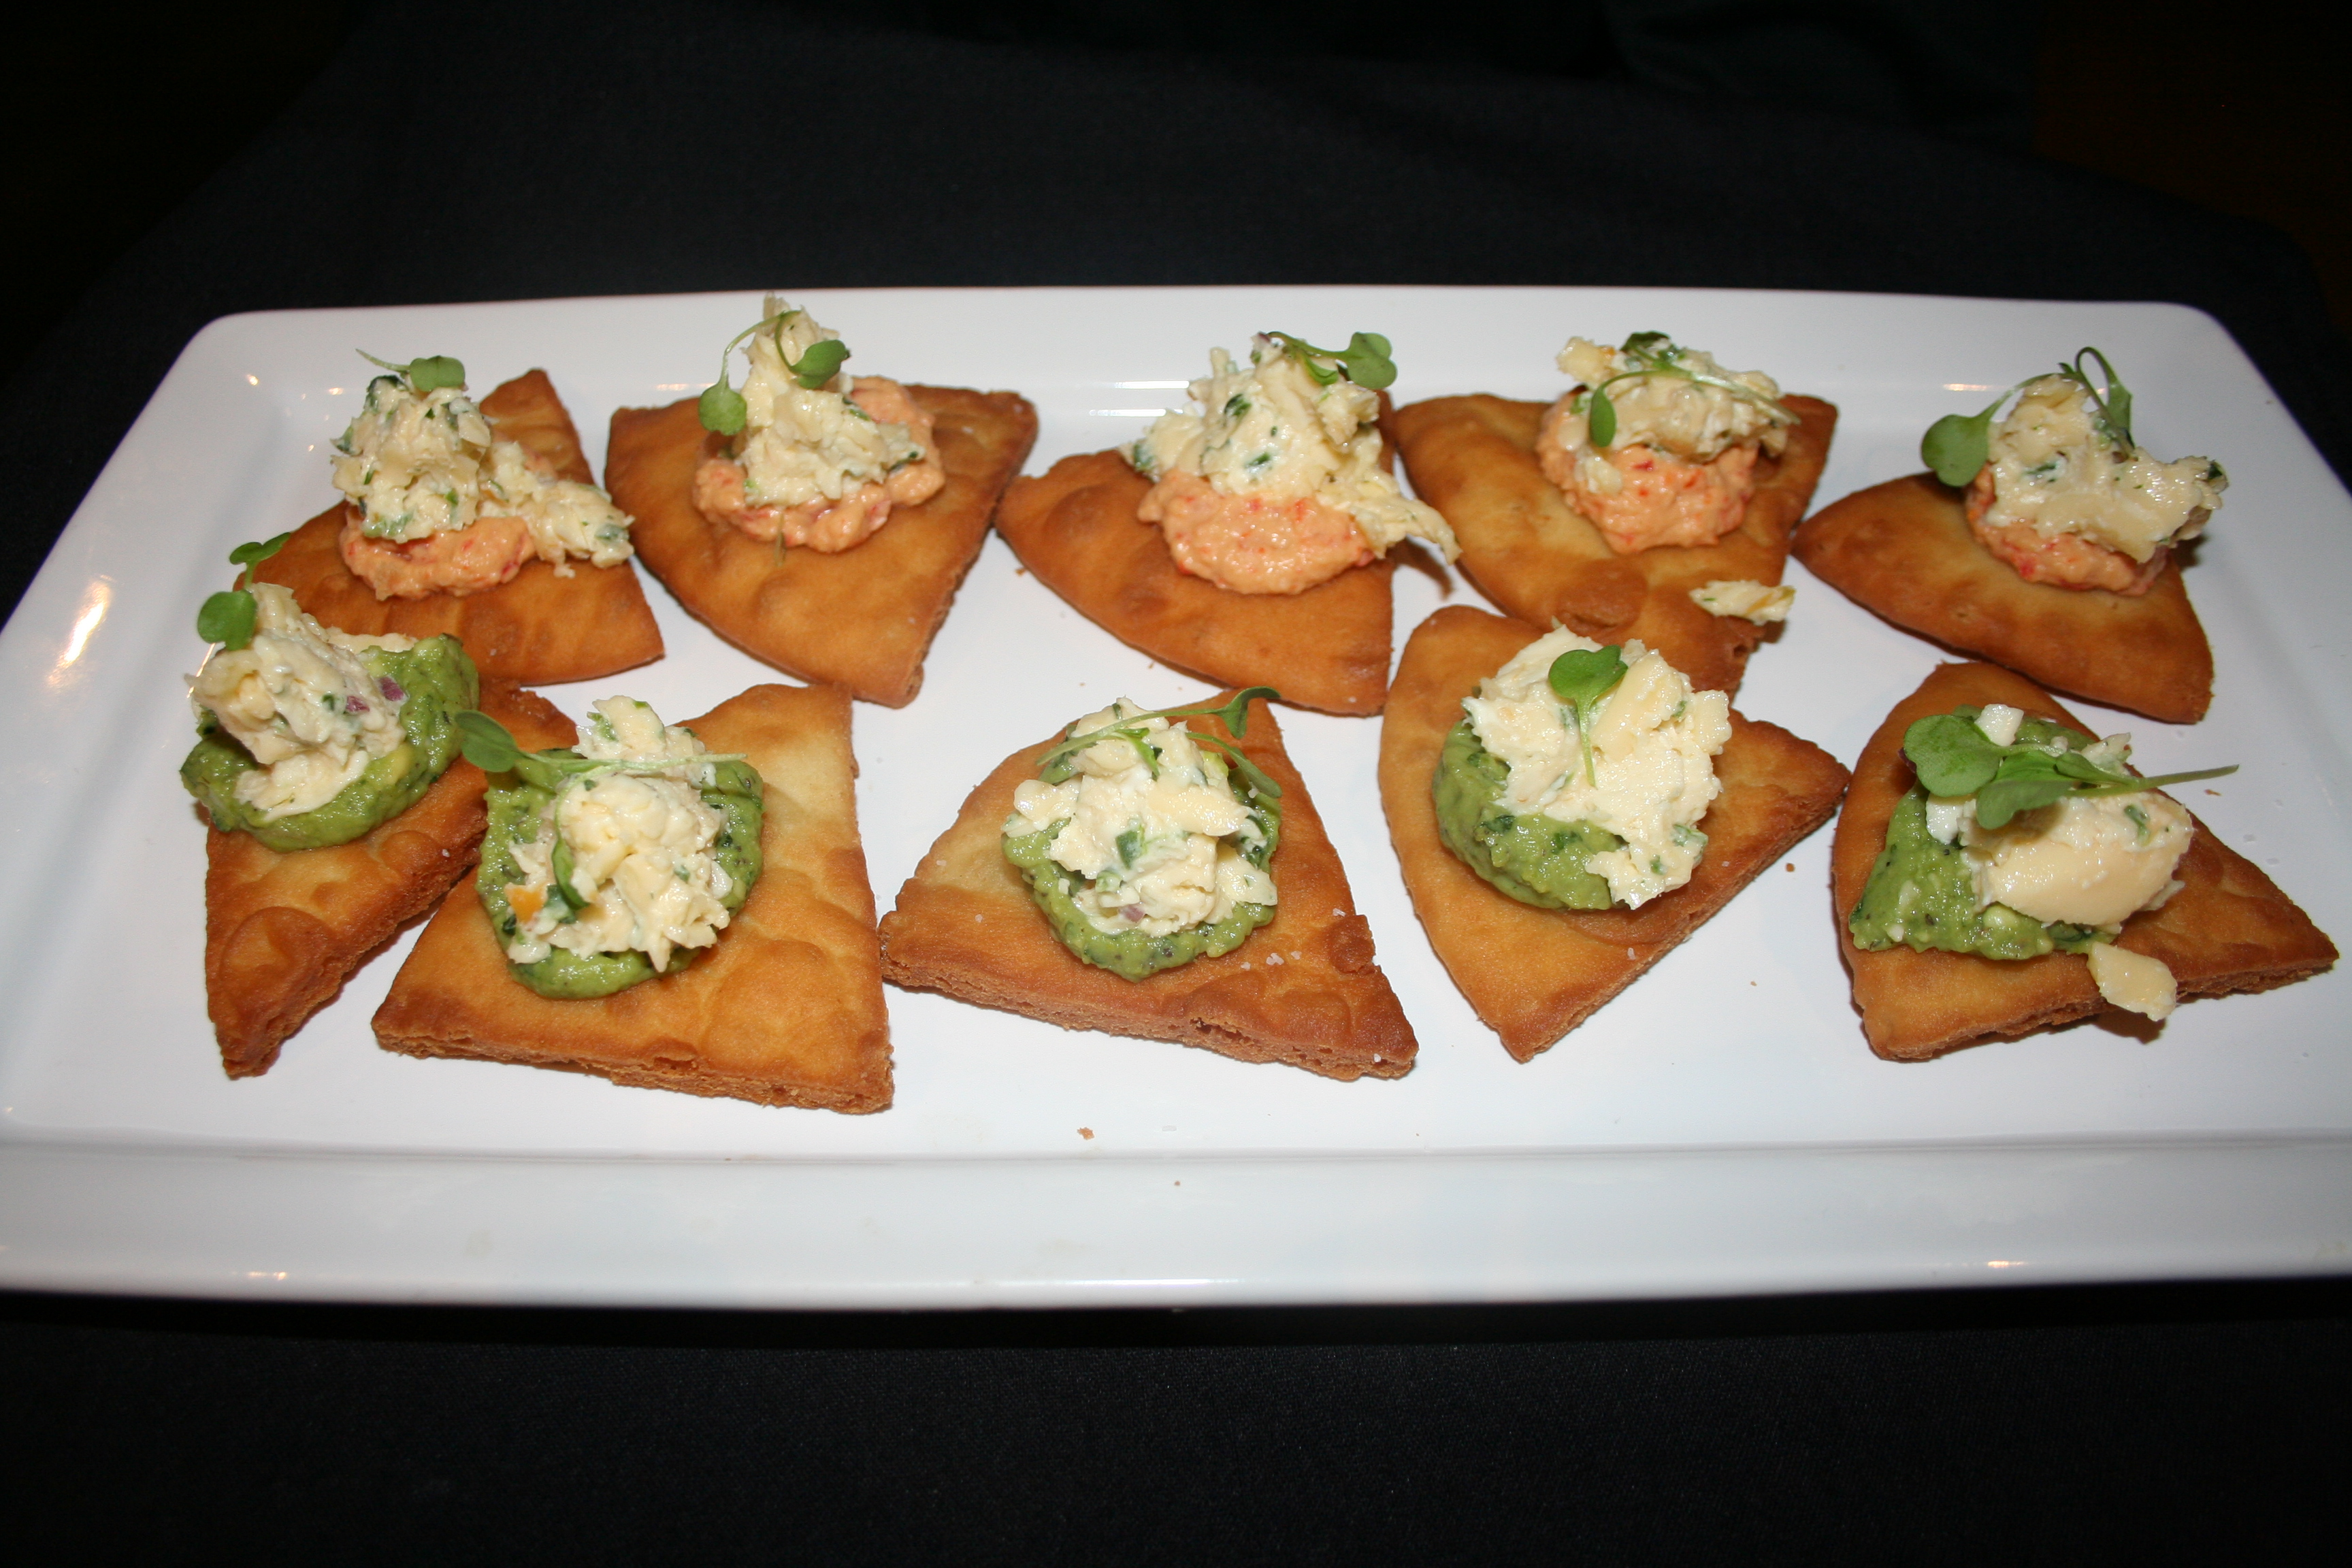 The $13 naan-chos were the best dish on the menu. (Photo: Mark Heckathorn/DC on Heels)